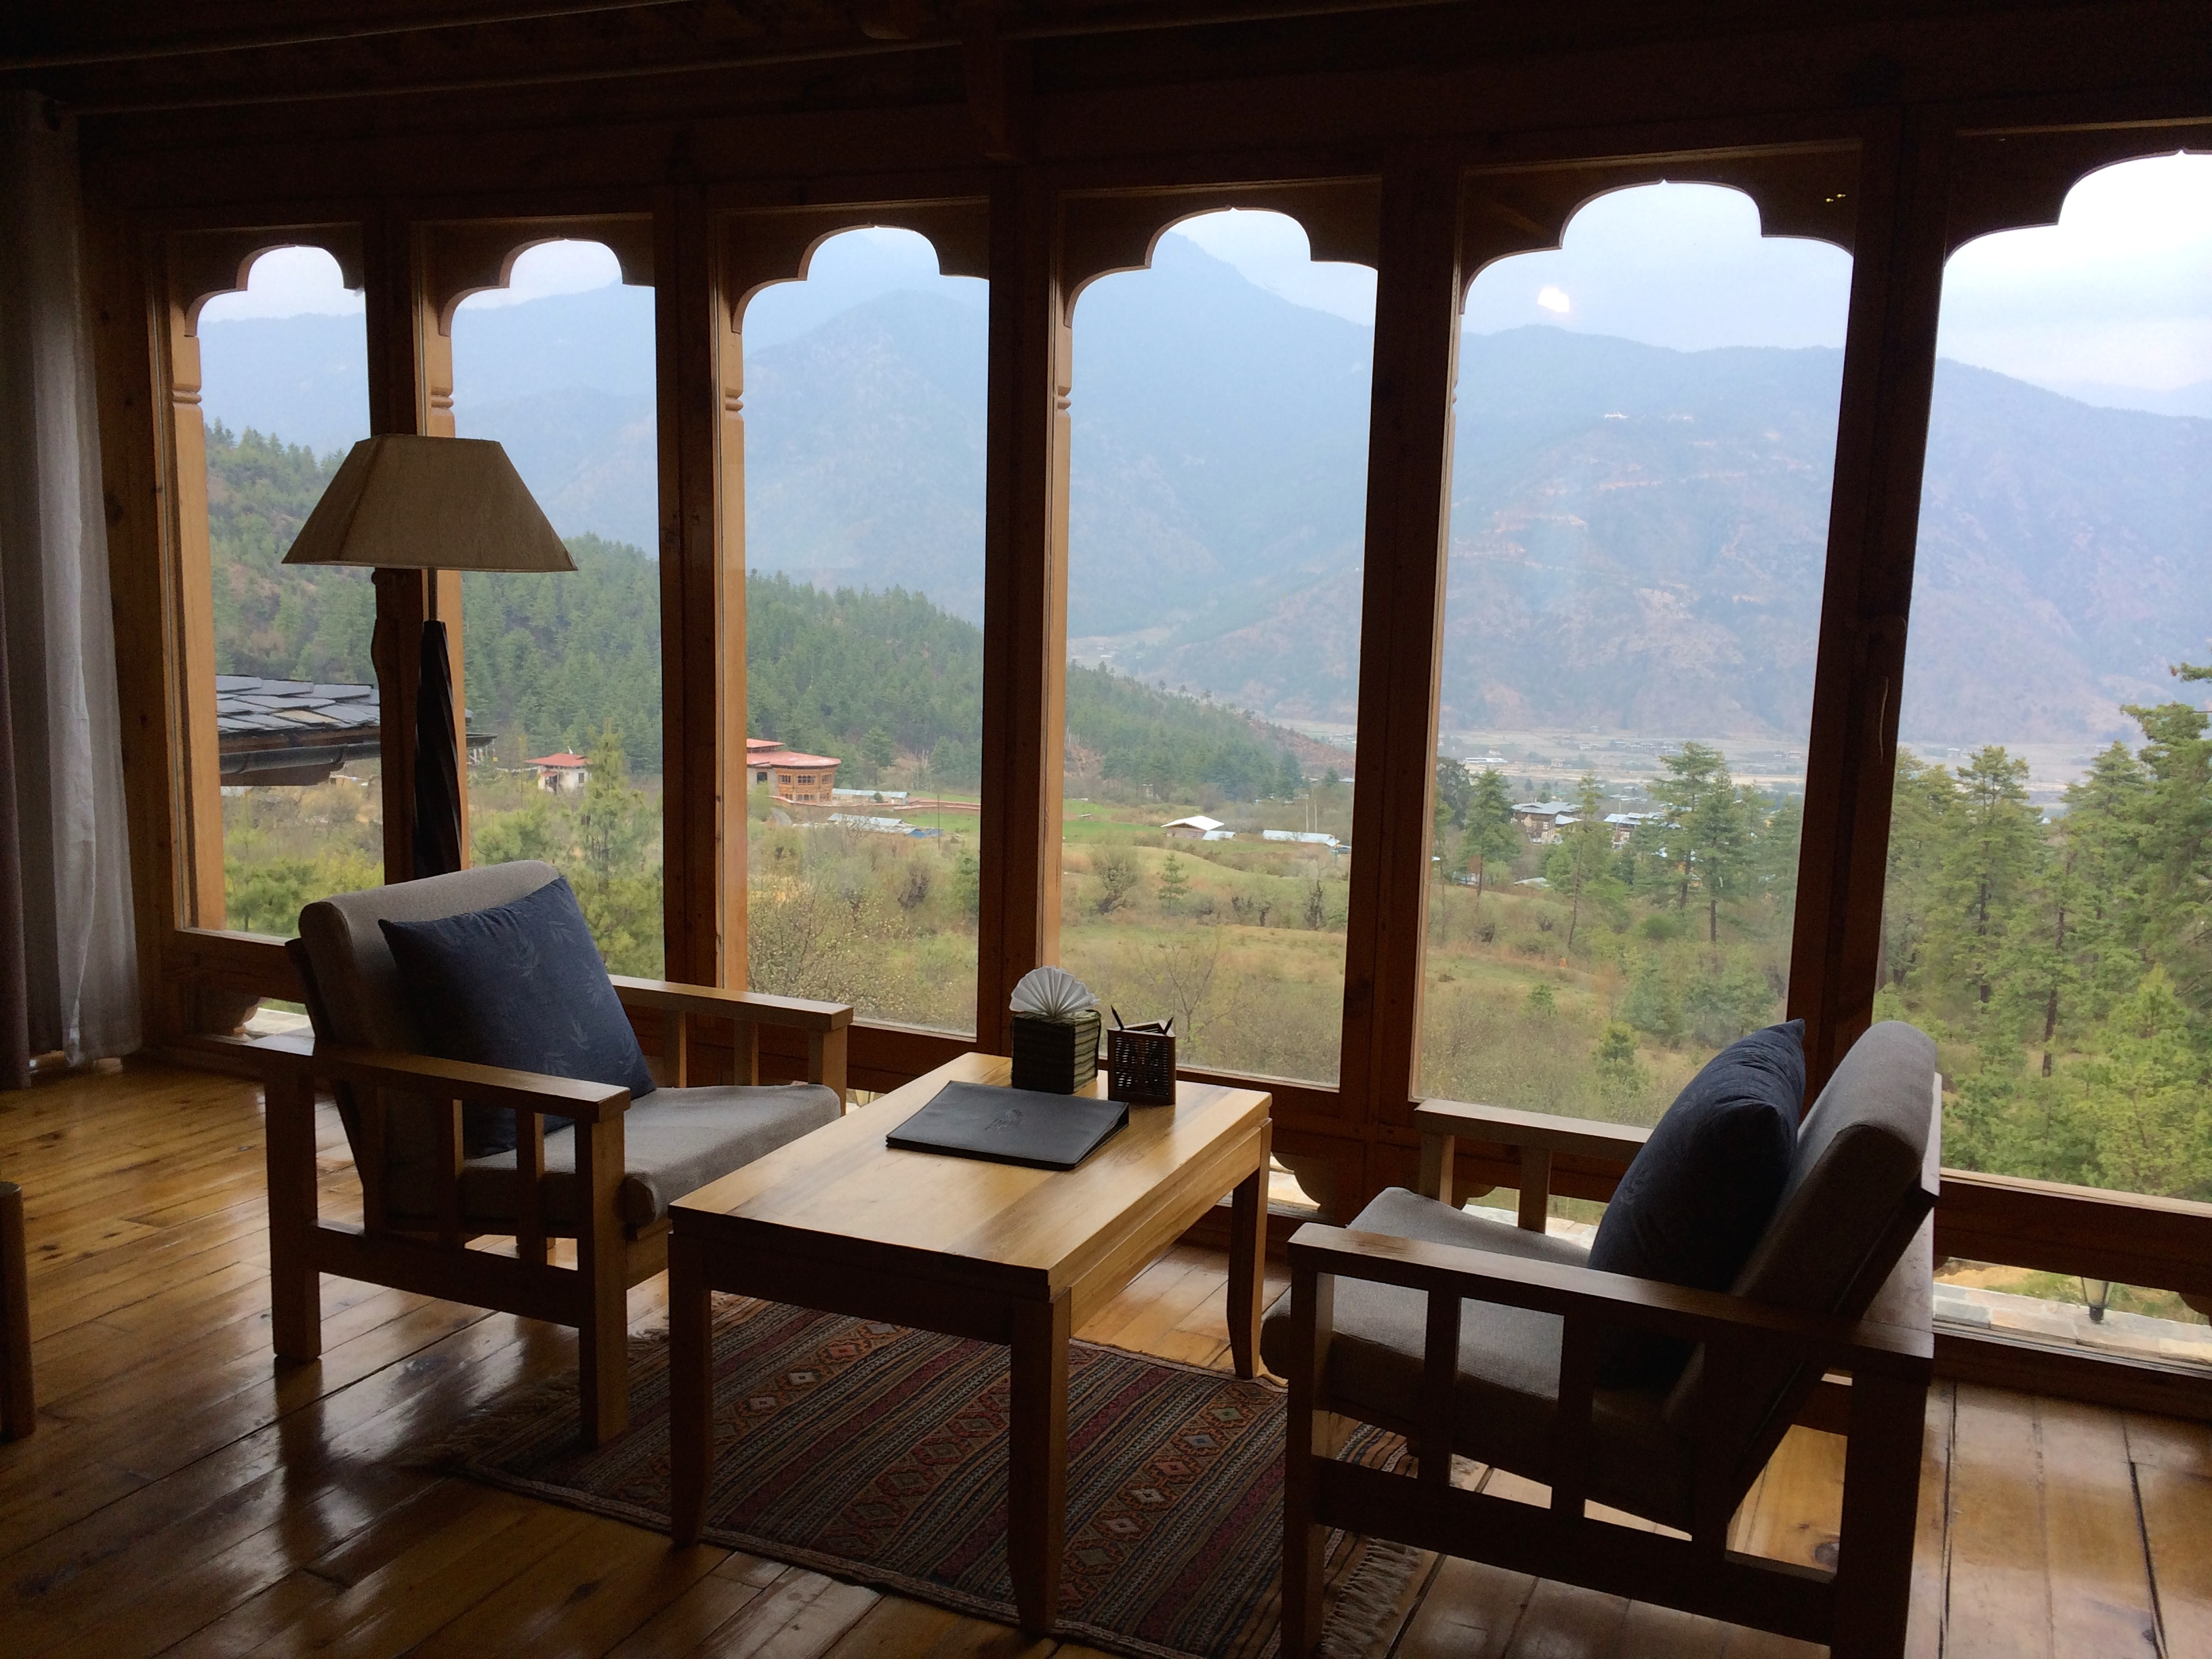 Naksel Hotel and Spa, Paro, Bhutan